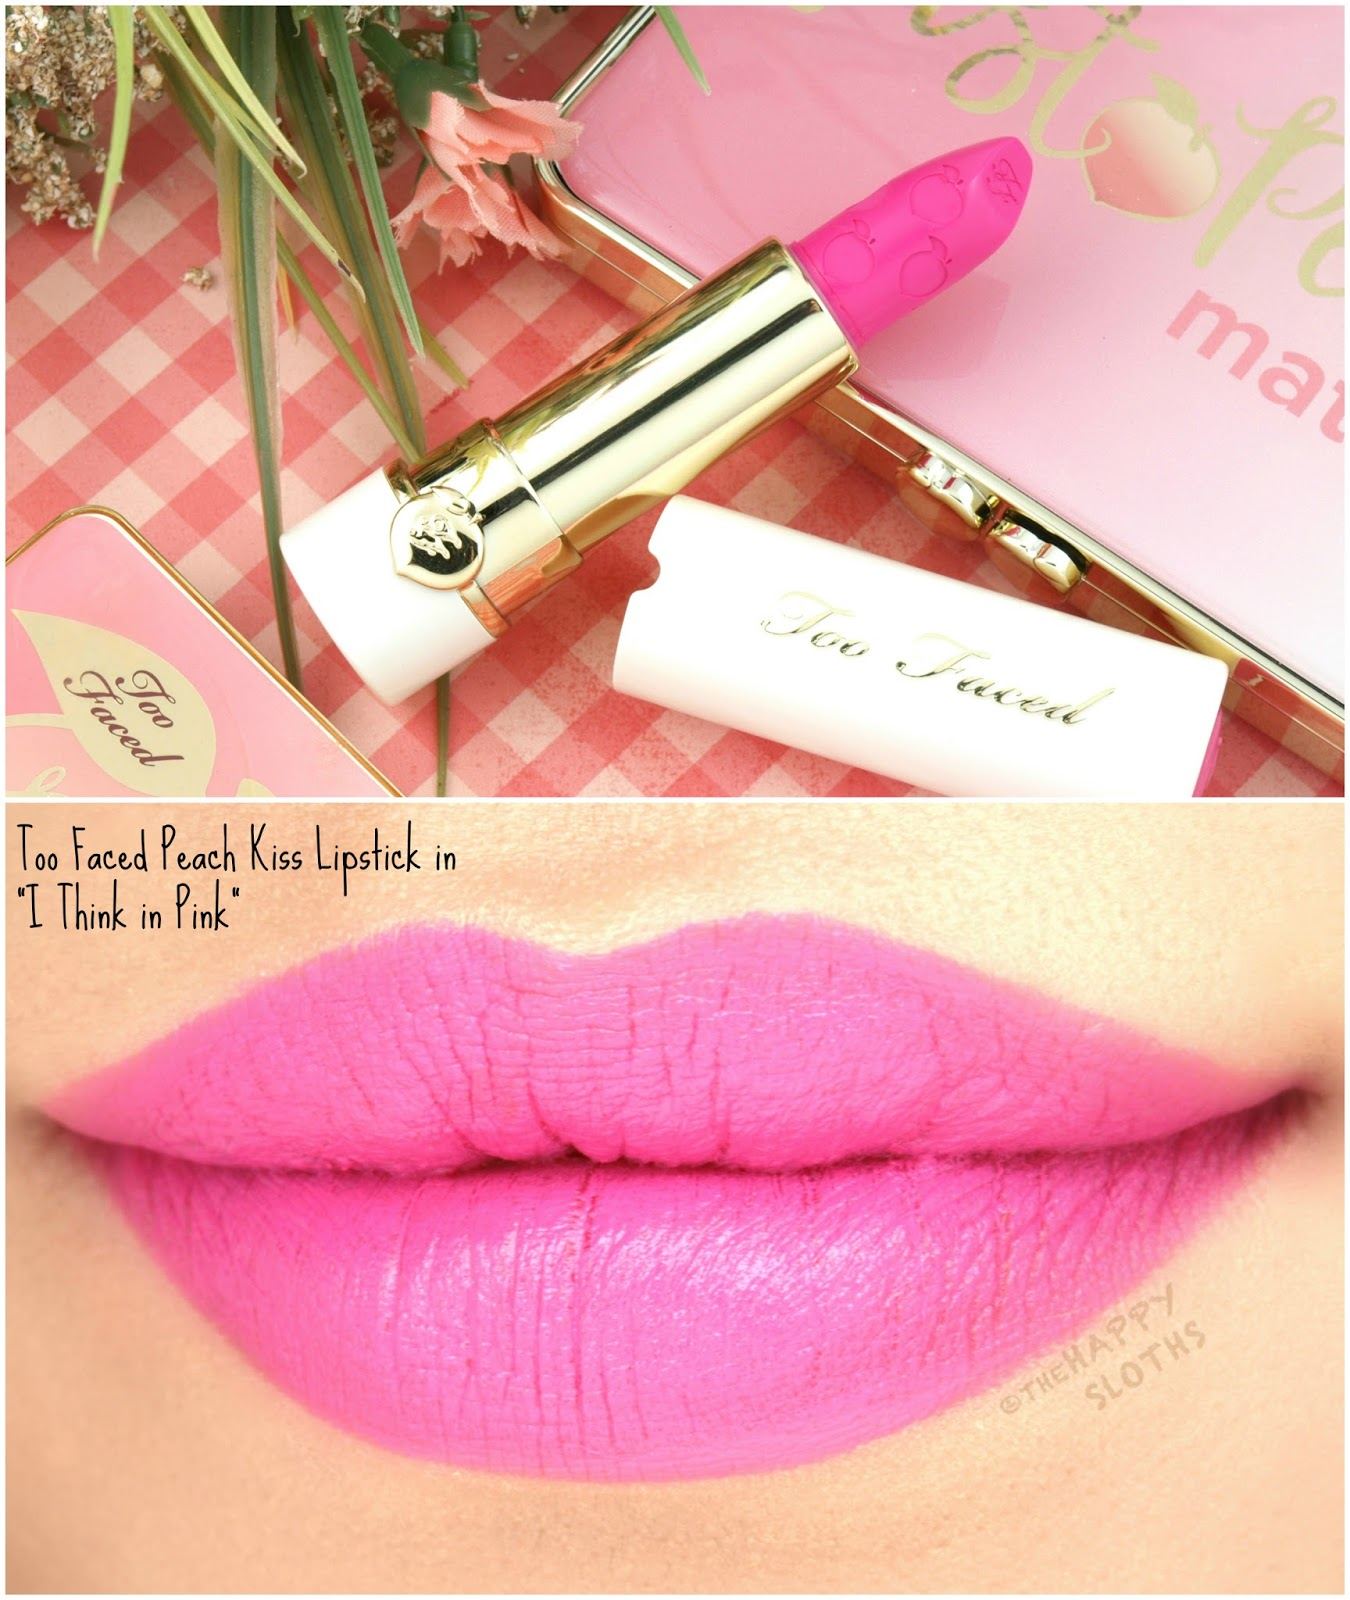 Too Faced Peach Kiss Moisture Matte Long Wear Lipstick In I Think Pink